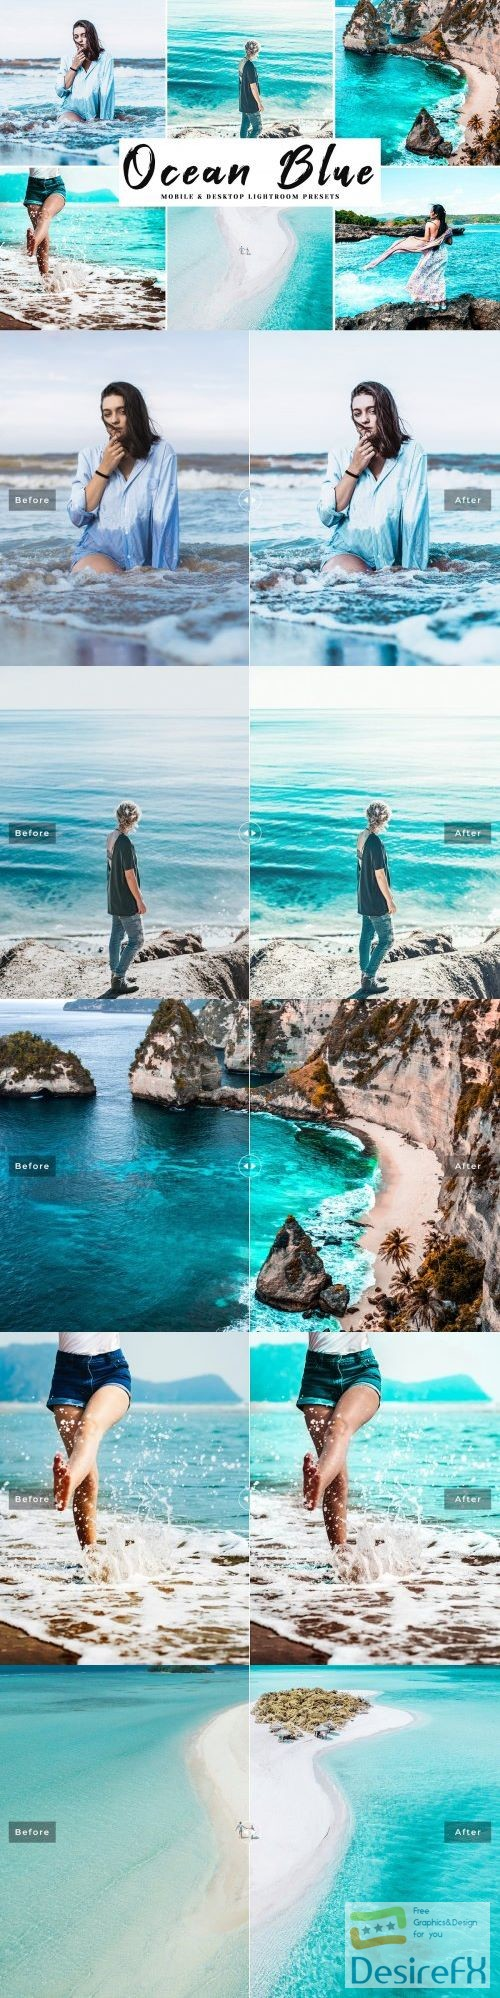 Ocean Blue Lightroom Presets Pack 4026118